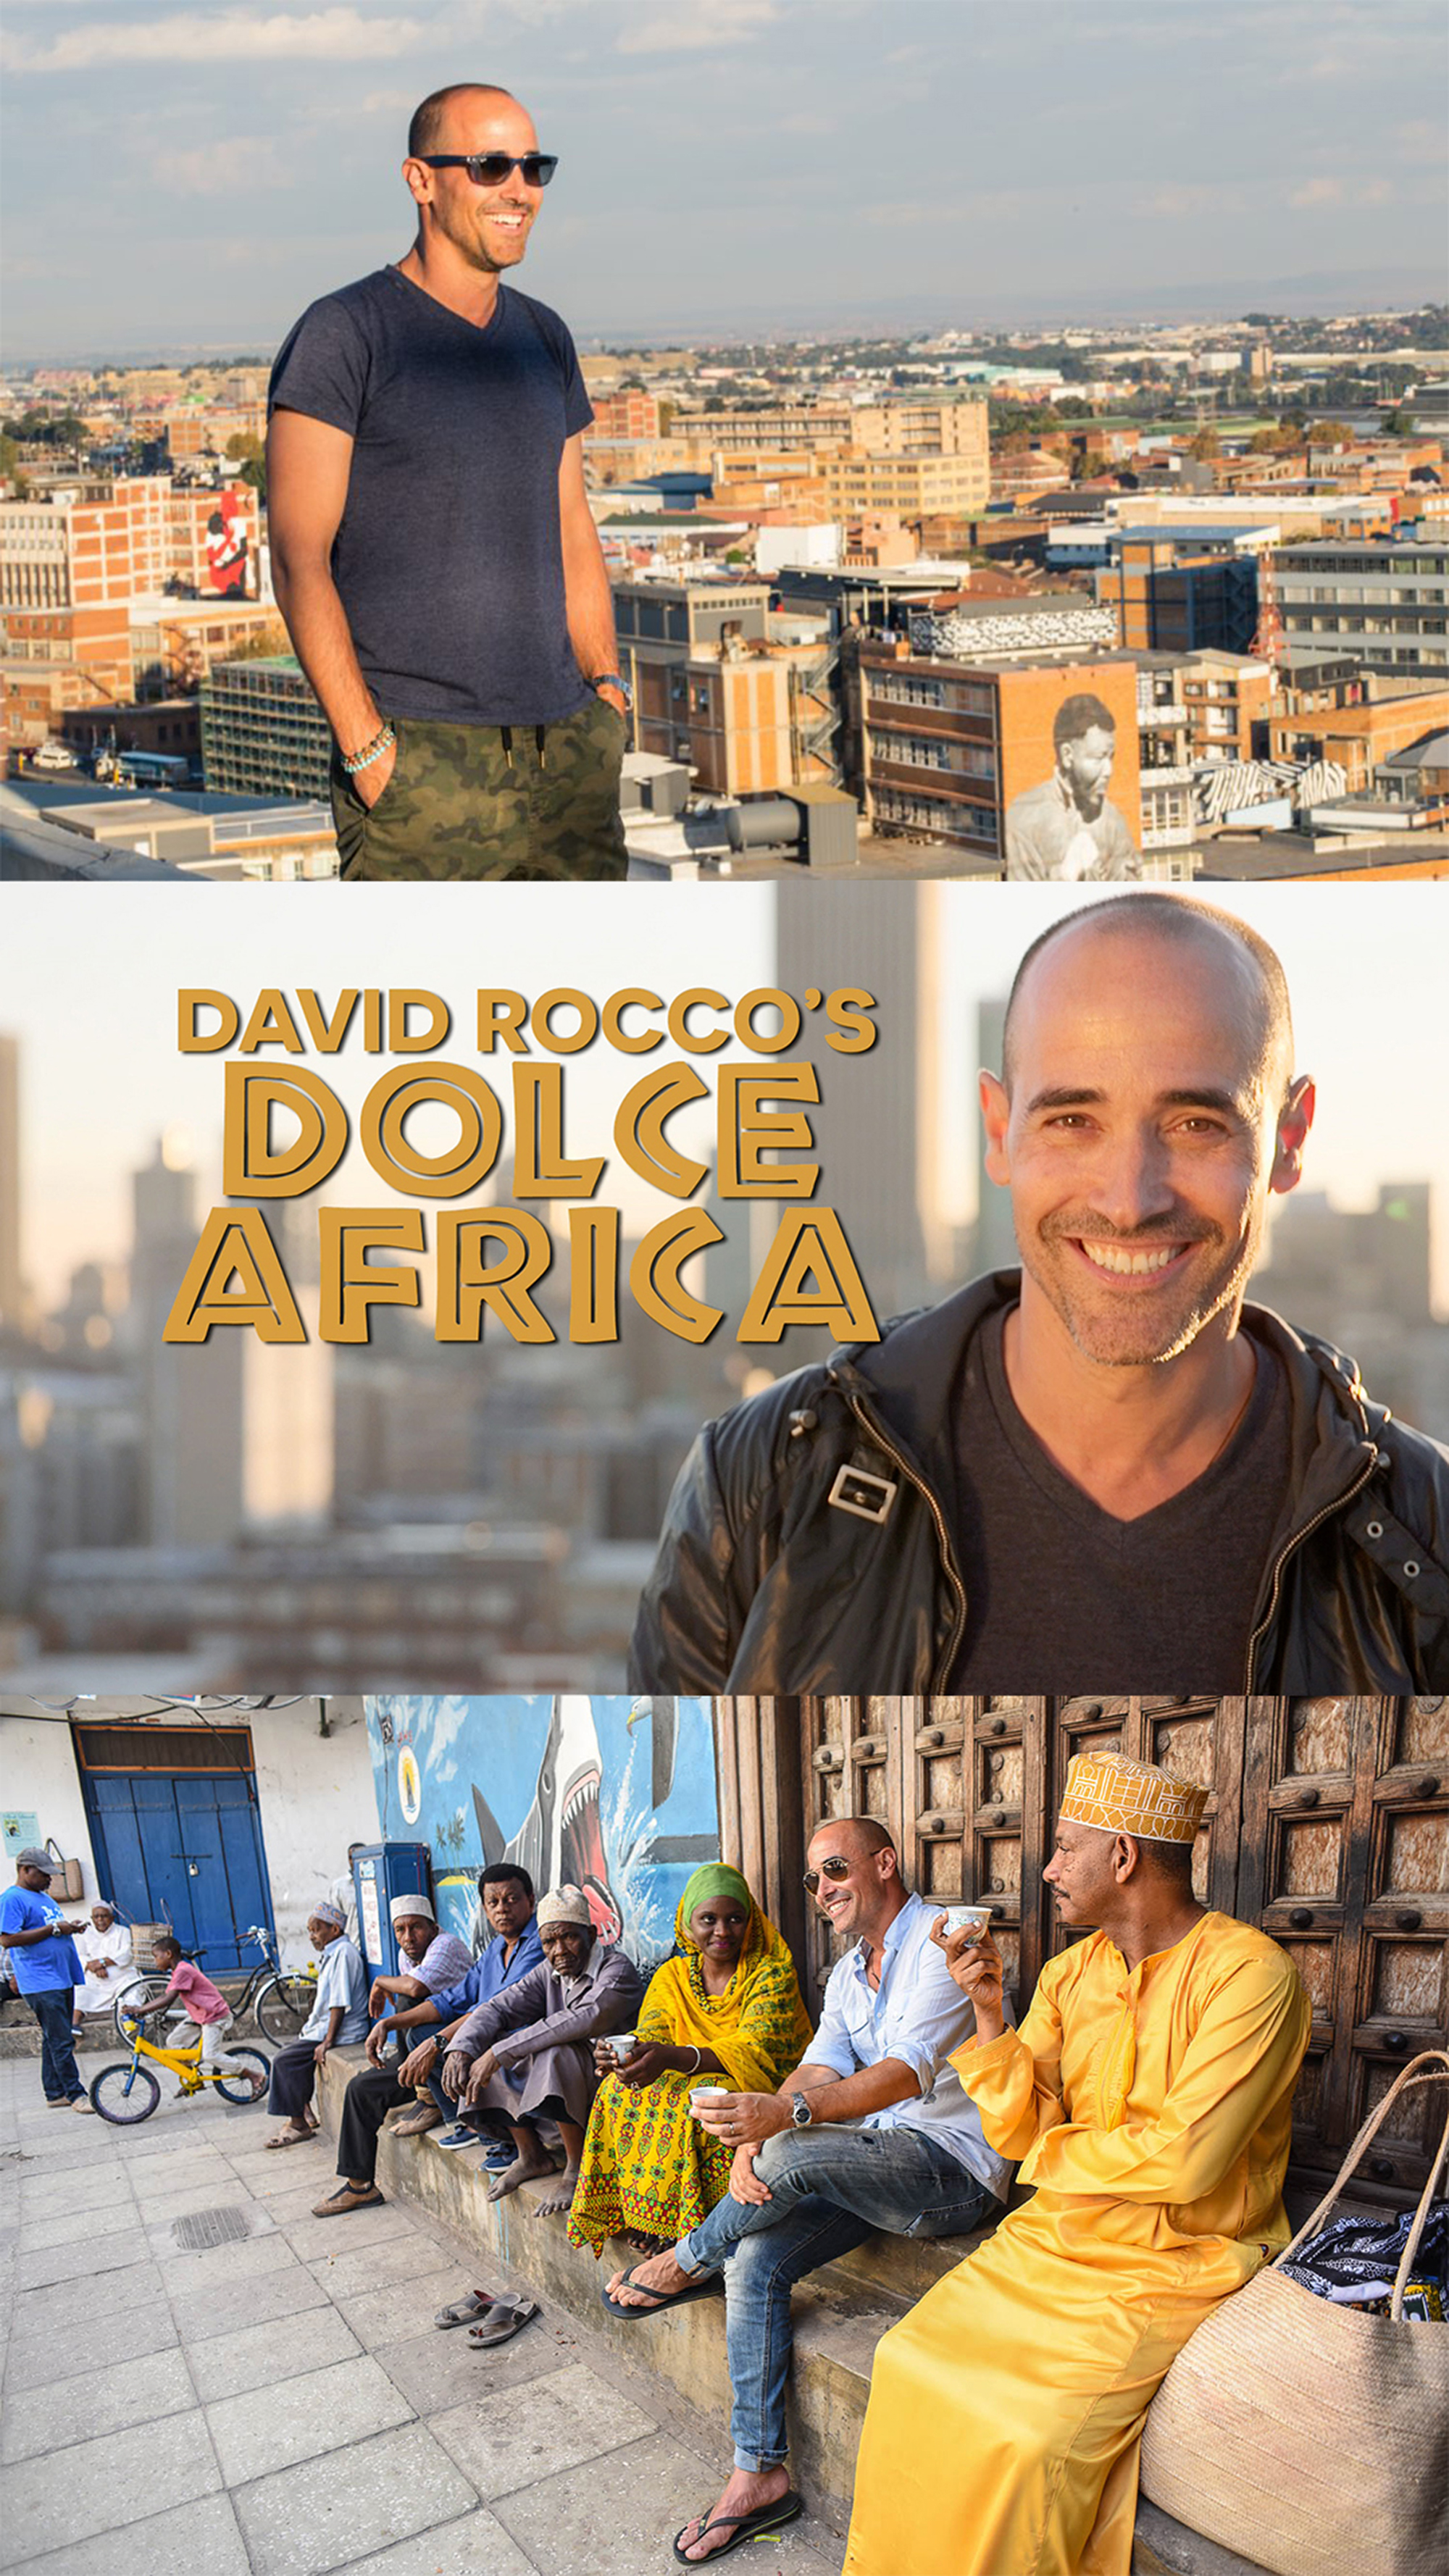 Dolce Africa